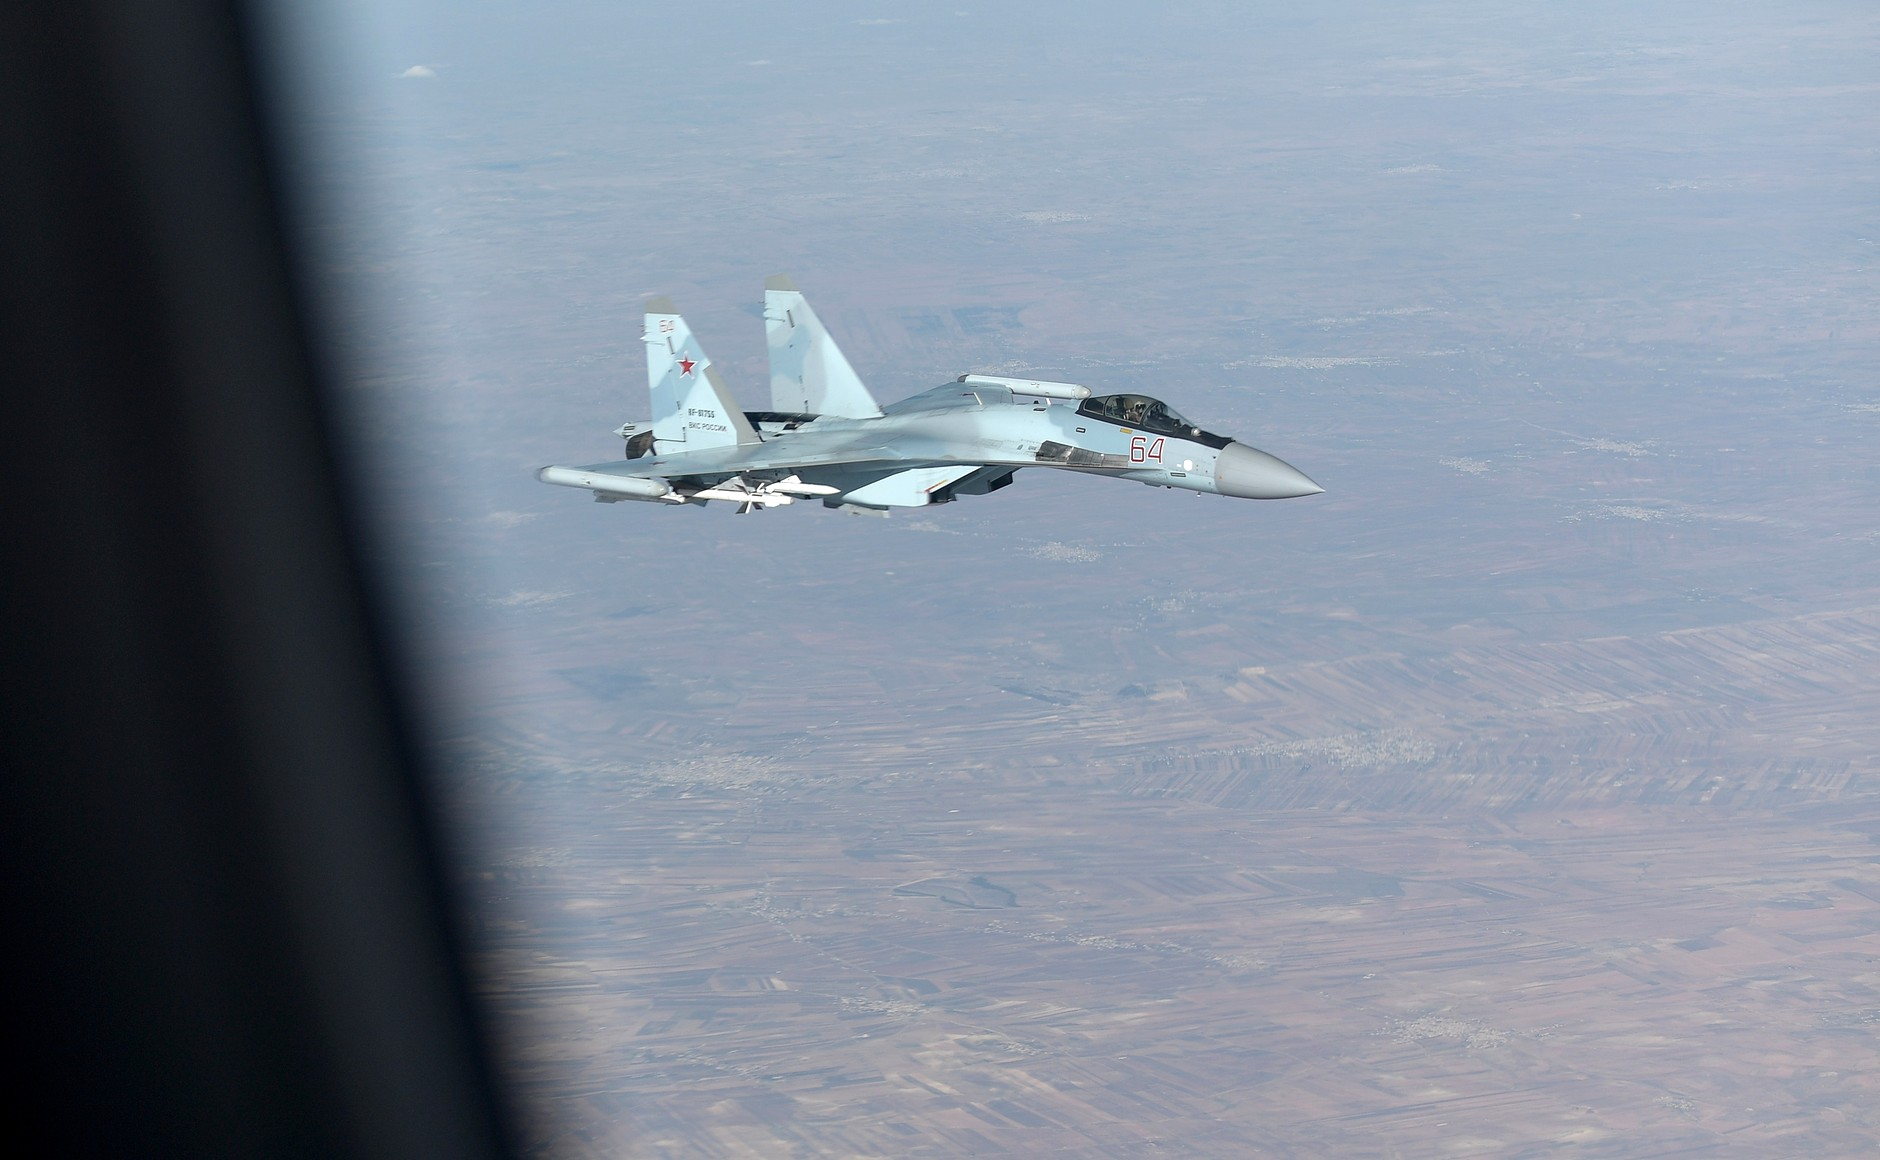 Russia Resumes Bombing Campaign in Syria